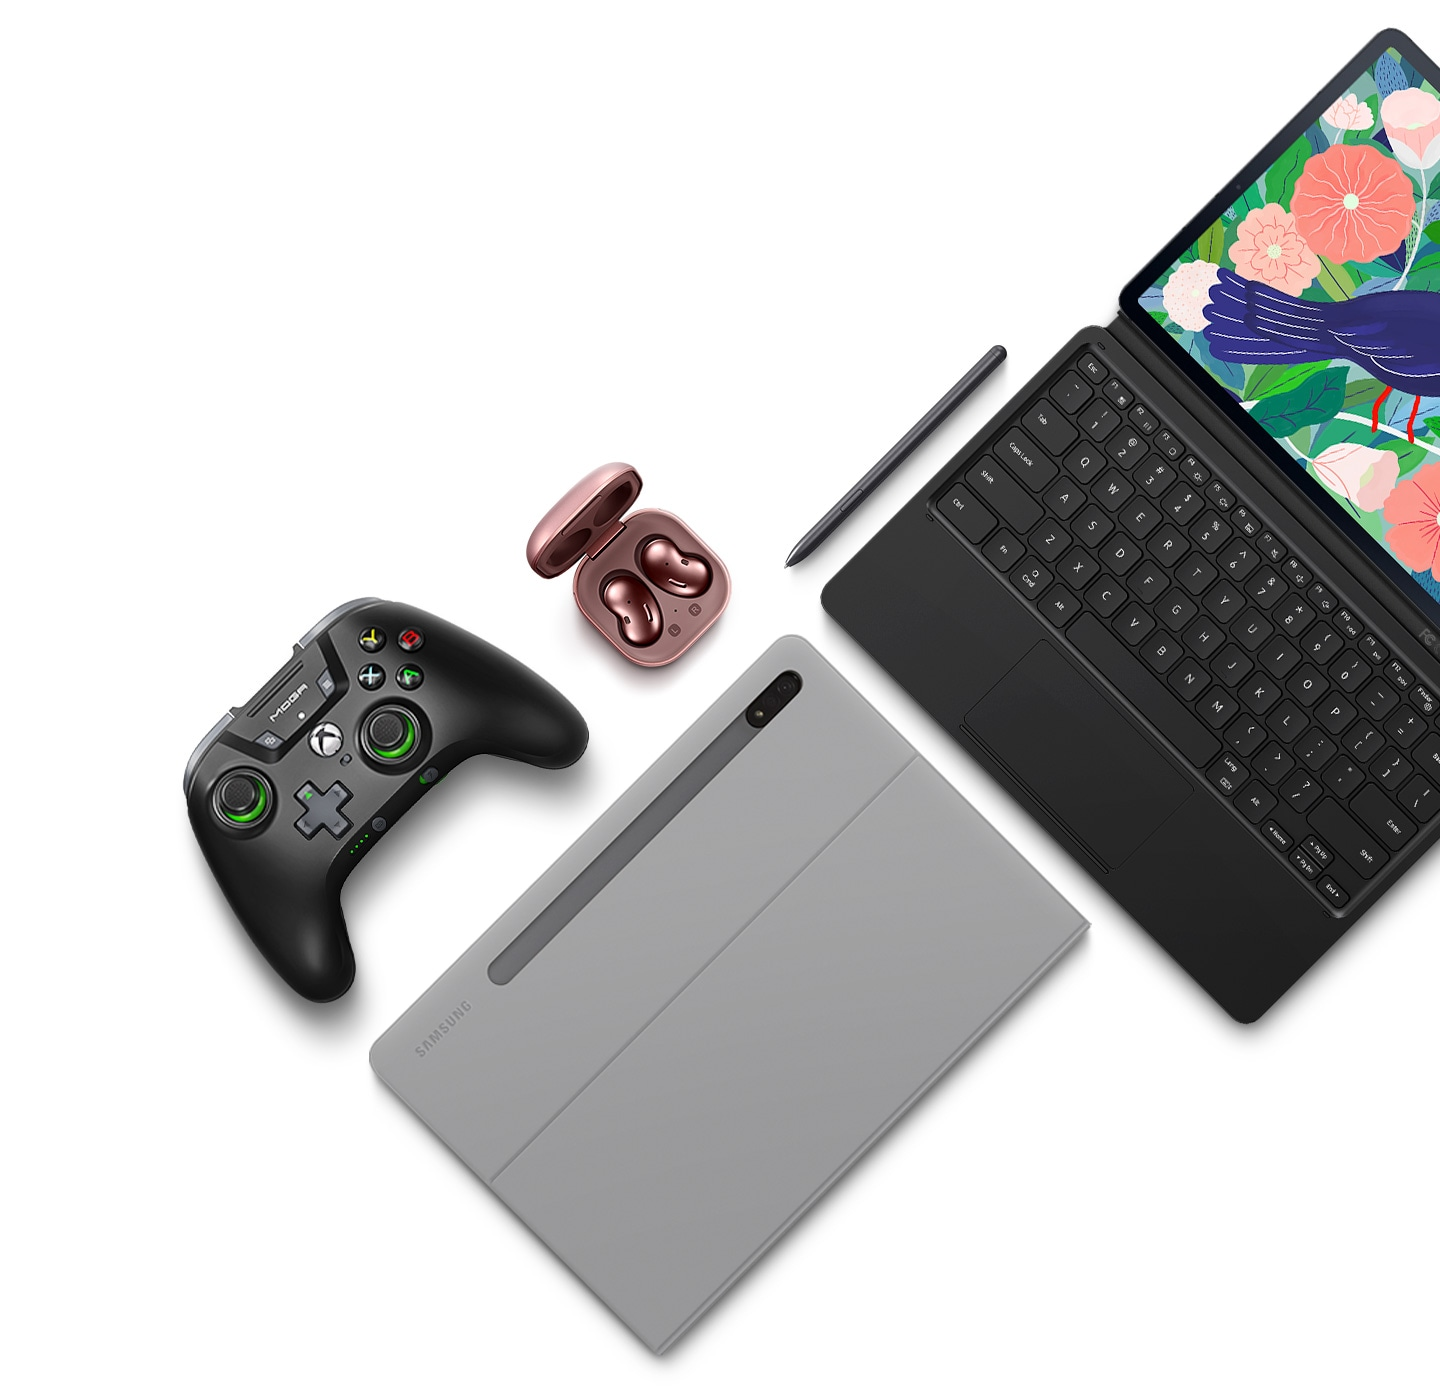 Galaxy Tab S7+ med Book Cover-tastatur, Galaxy Tab S7+ inne i en Book Cover, S Pen, spillkontroller, og Galaxy Buds Live